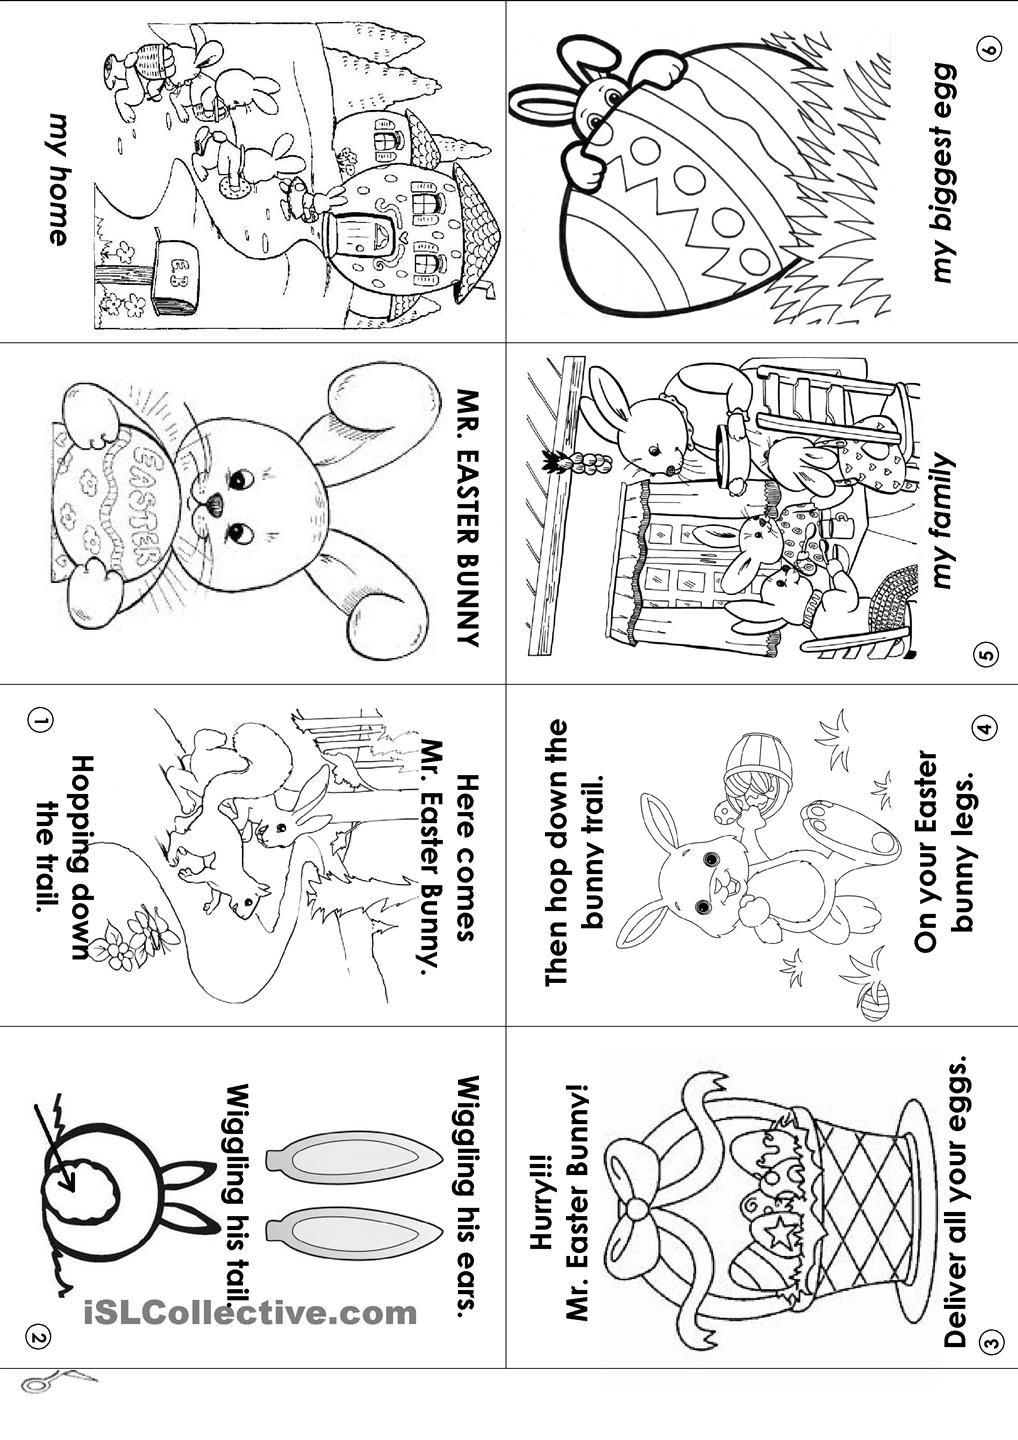 Easter Bunny Chant In A Mini Book Mini Books Easter Worksheets Fire Emblem Fates [ 1440 x 1018 Pixel ]